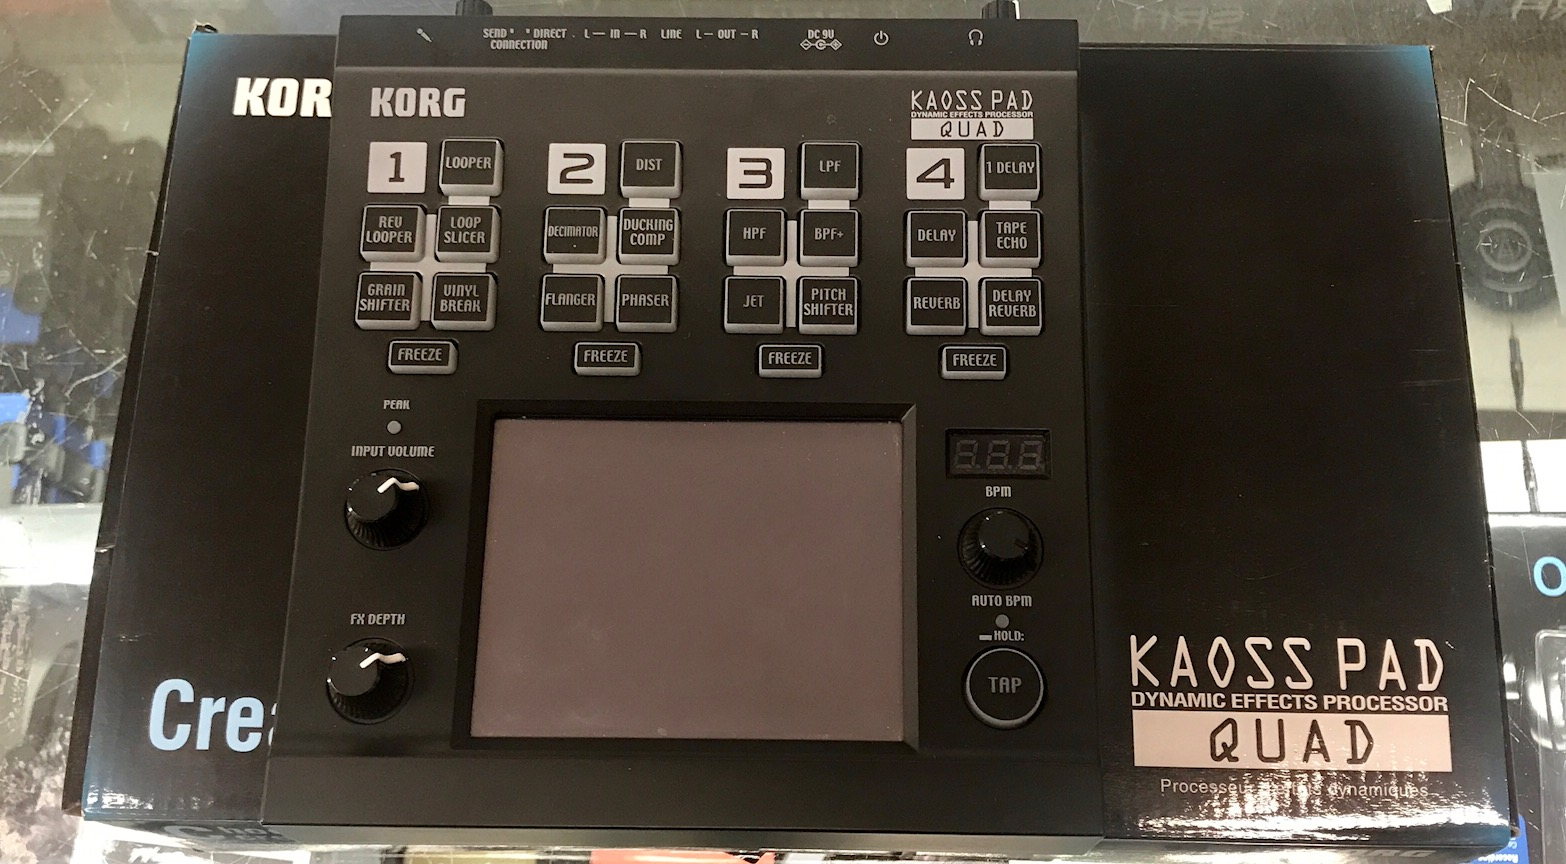 Korg - Kaoss Pad Quad